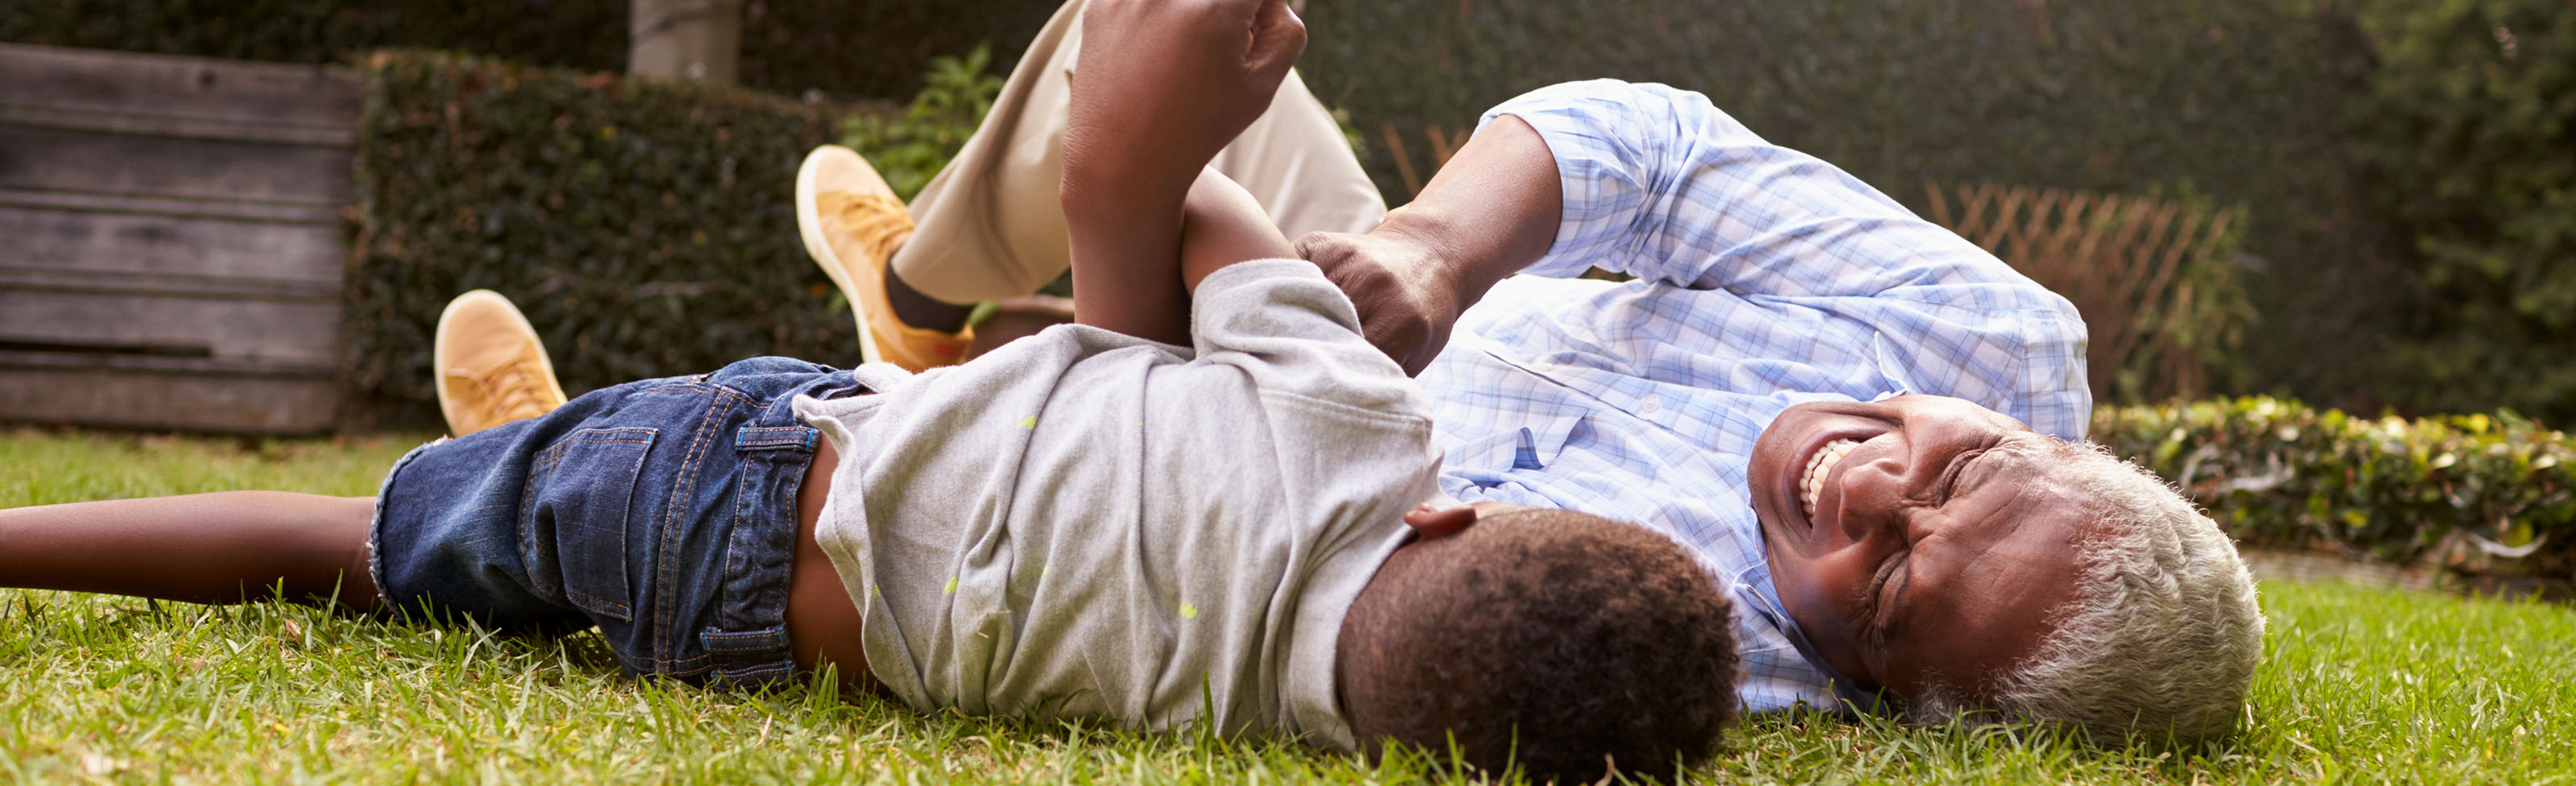 Man and grandson playing on lawn